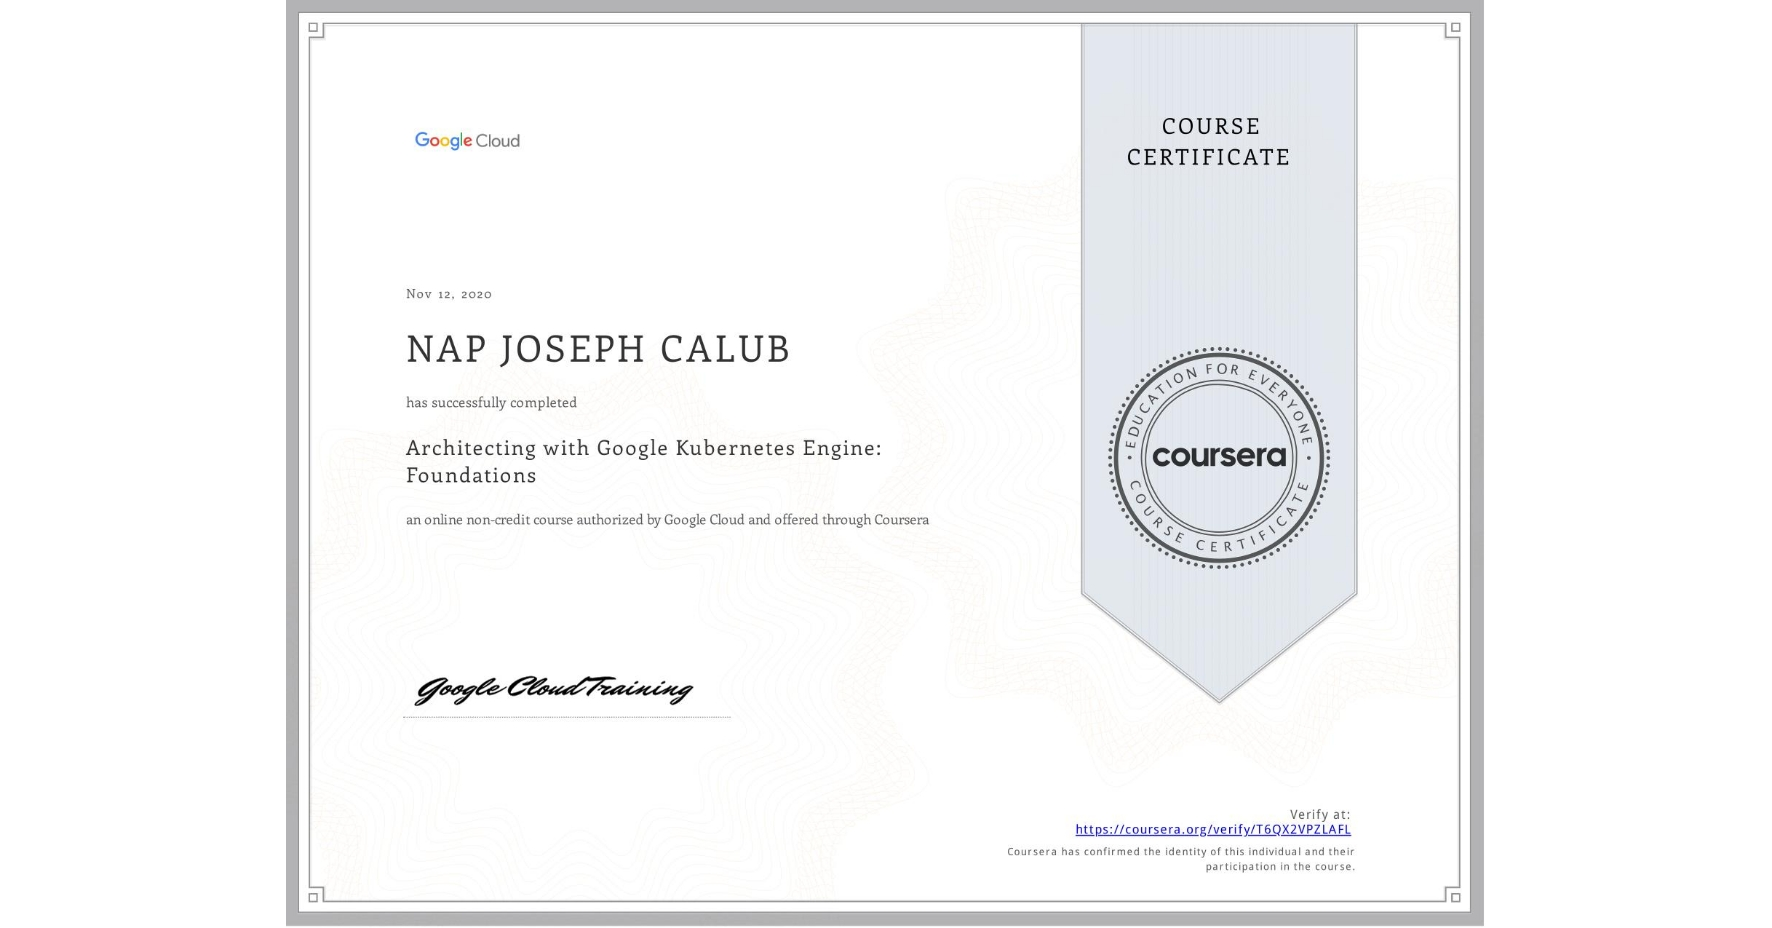 View certificate for NAP JOSEPH  CALUB, Architecting with Google Kubernetes Engine: Foundations, an online non-credit course authorized by Google Cloud and offered through Coursera